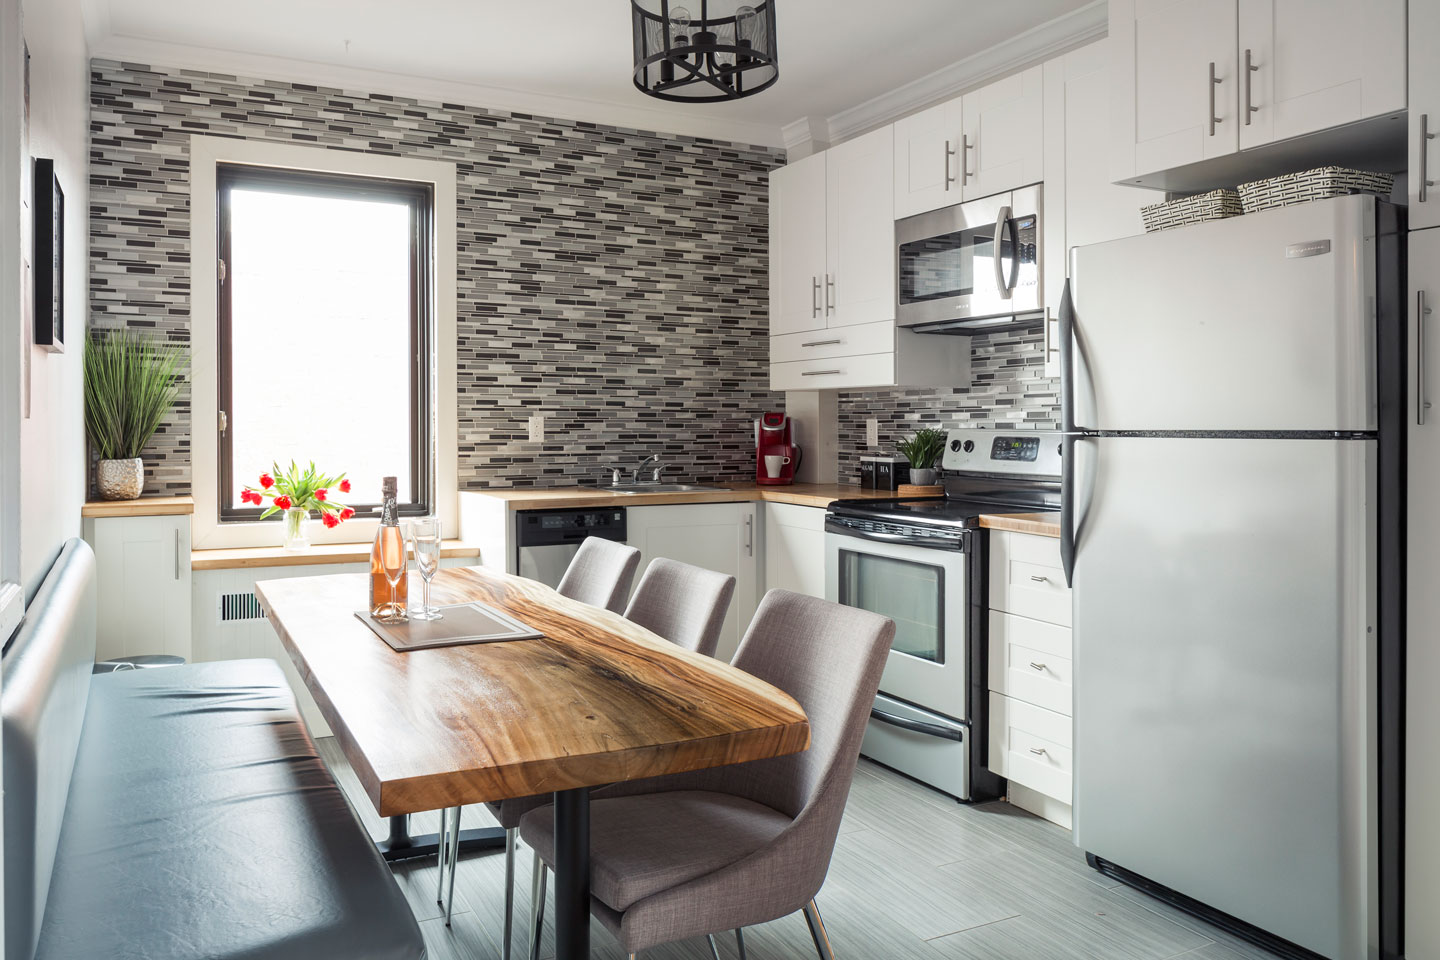 Scandinavian kiss: fully equipped kitchen with dishwasher and dining area